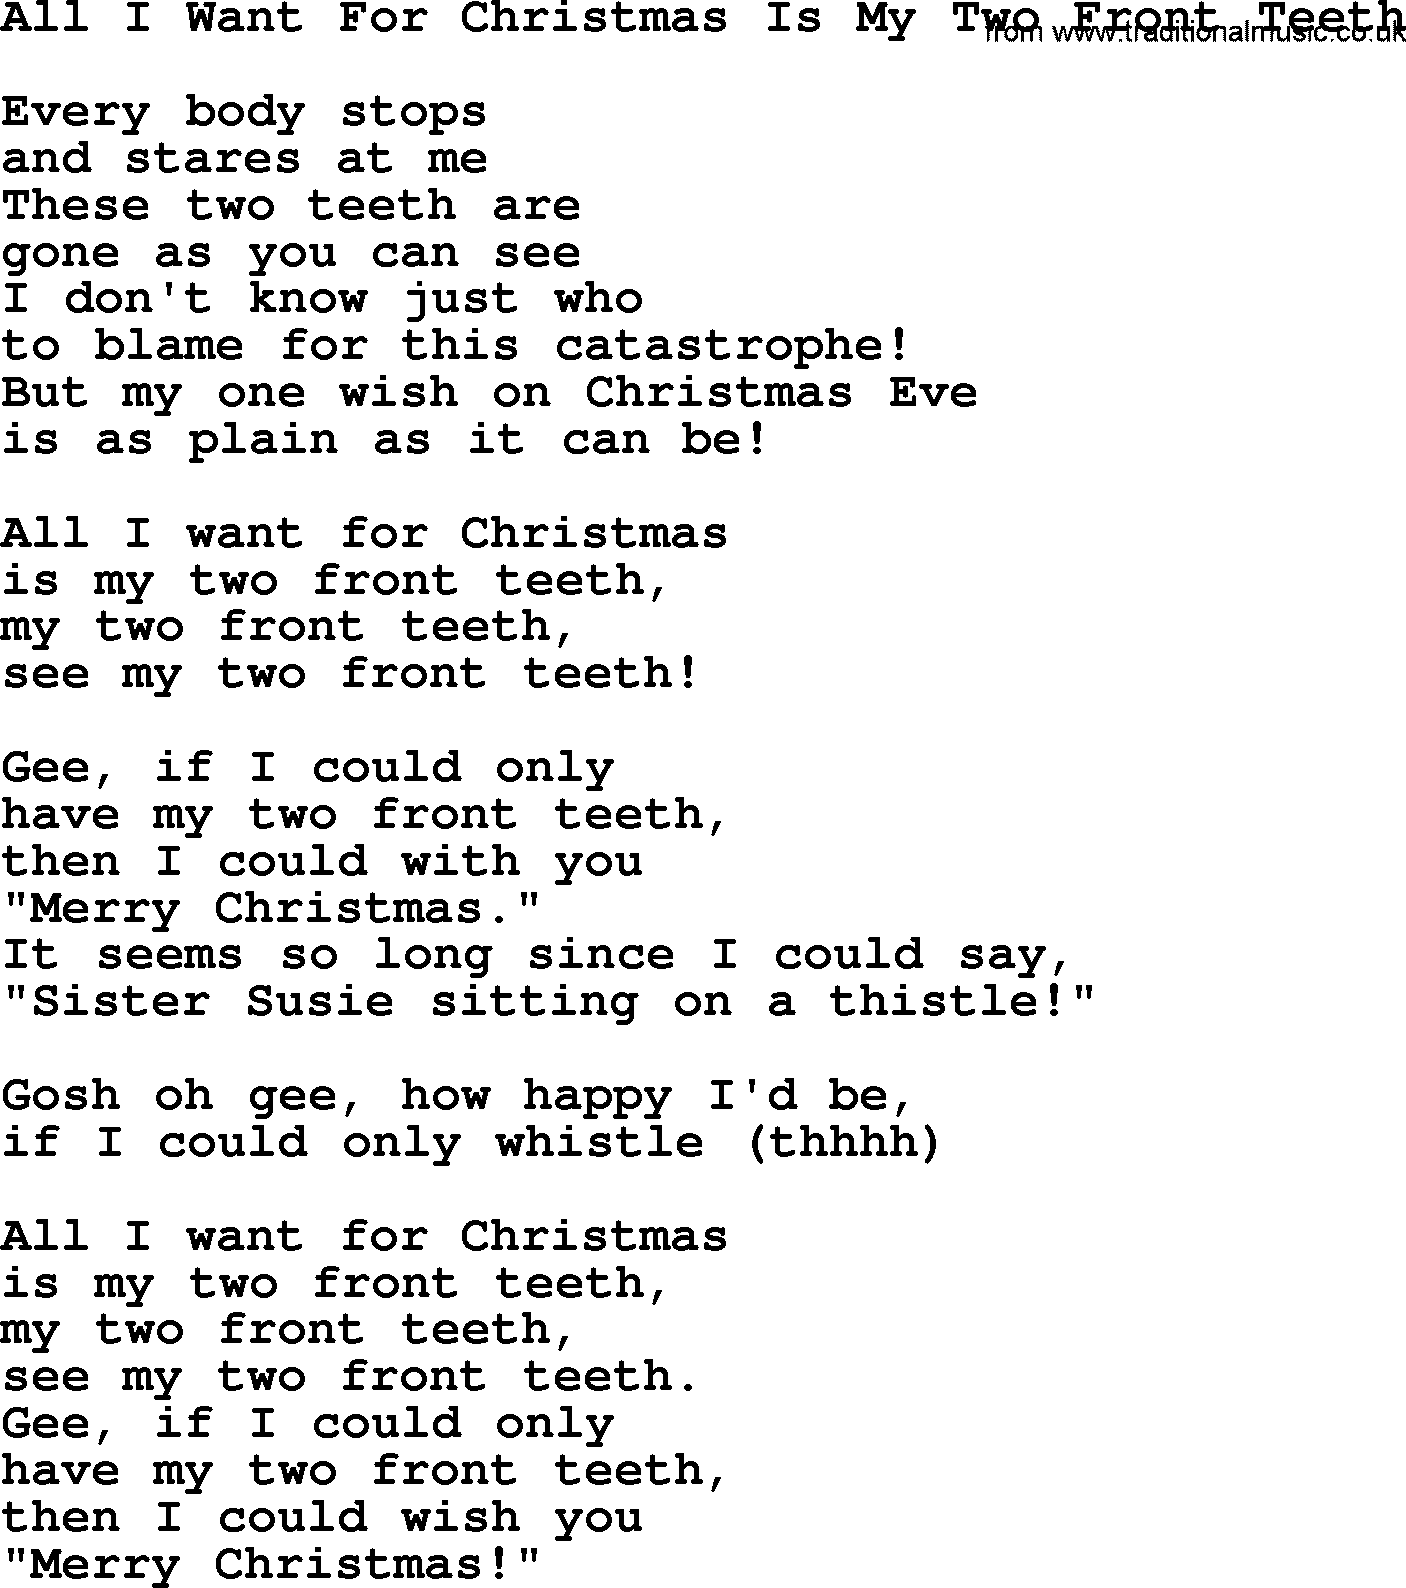 Lyrics All I Want For Christmas.Catholic Hymns Song All I Want For Christmas Is My Two